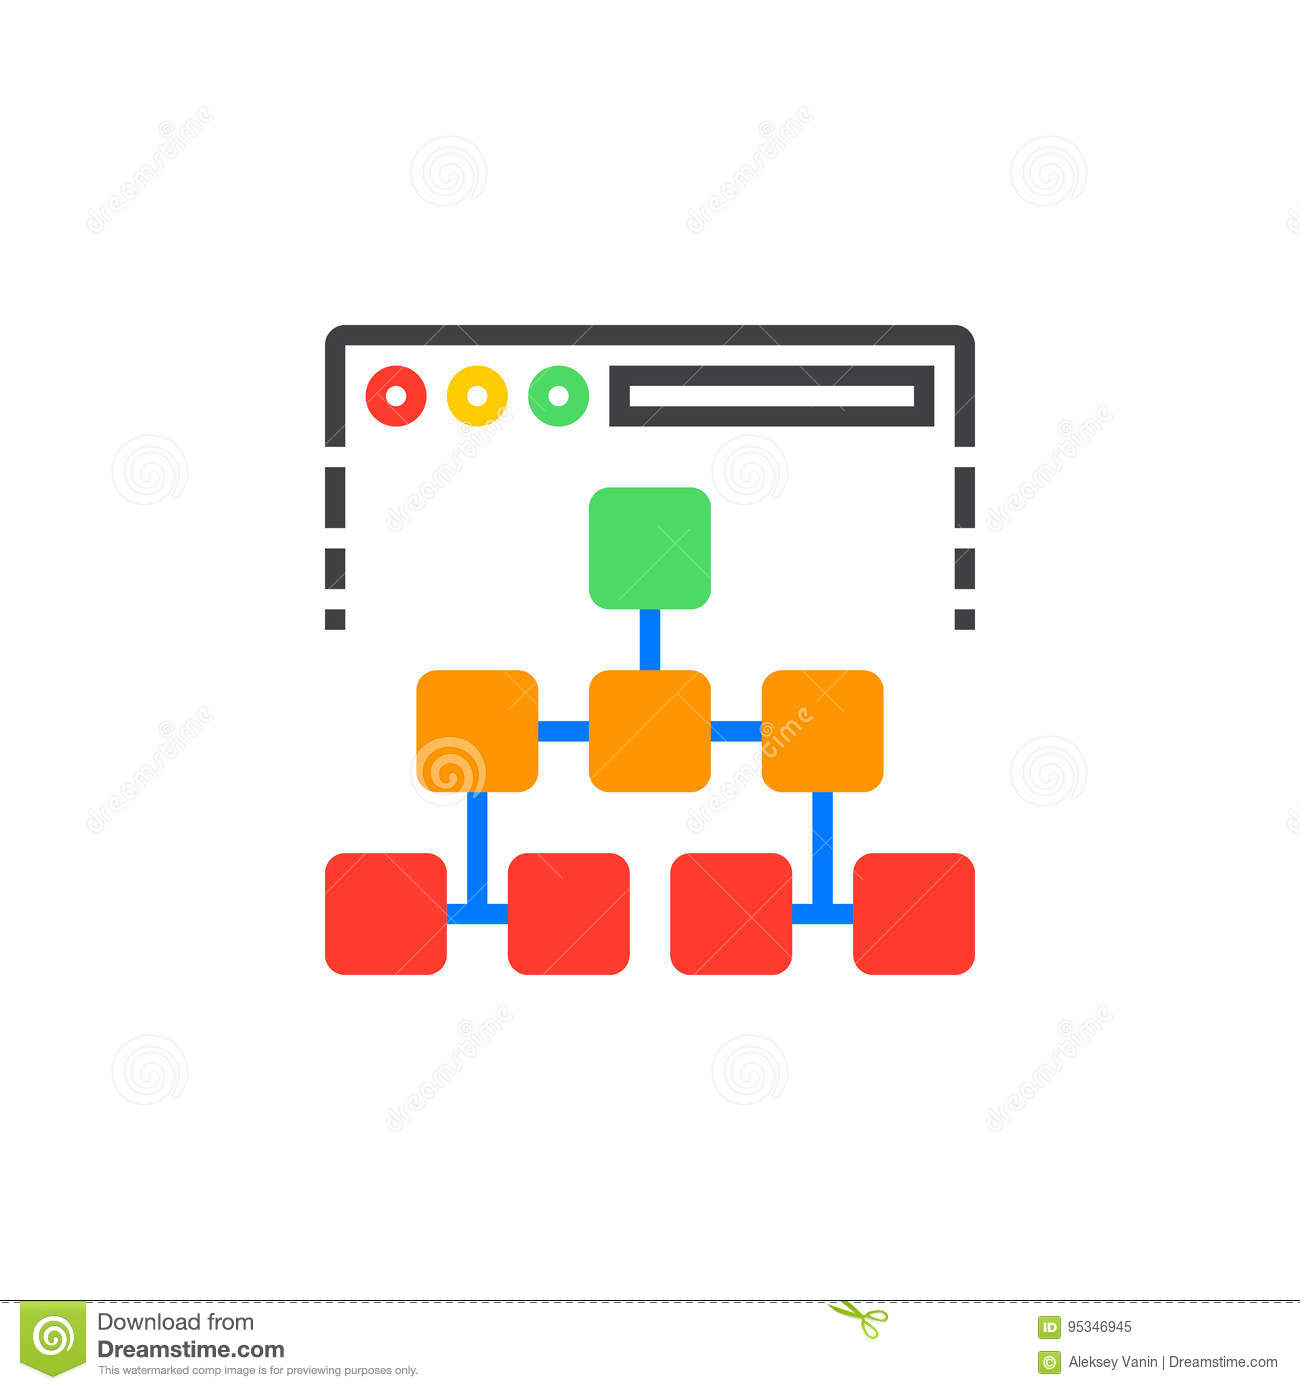 Site map icon vector, filled flat sign, solid colorful pictogram